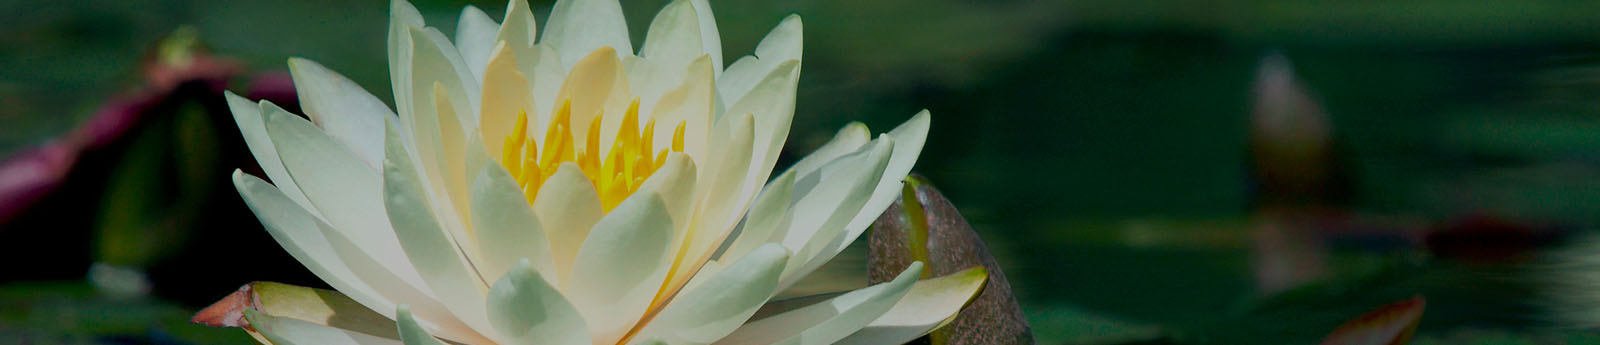 Resources | Temples-Halloran Funeral & Cremation Services